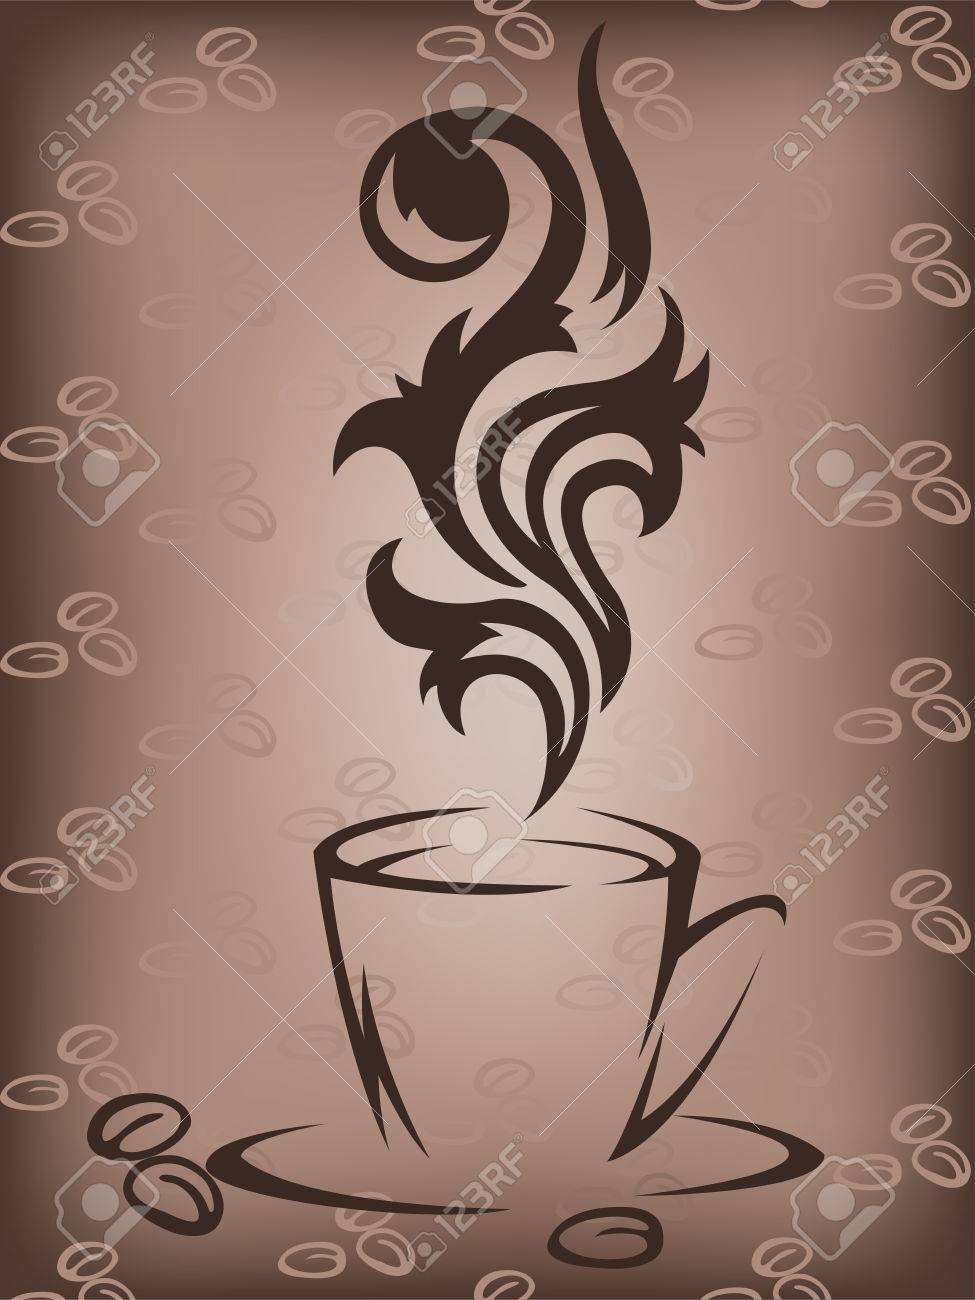 Stylized cup of coffee on a brown background with coffee beans Stock Vector - 8925610